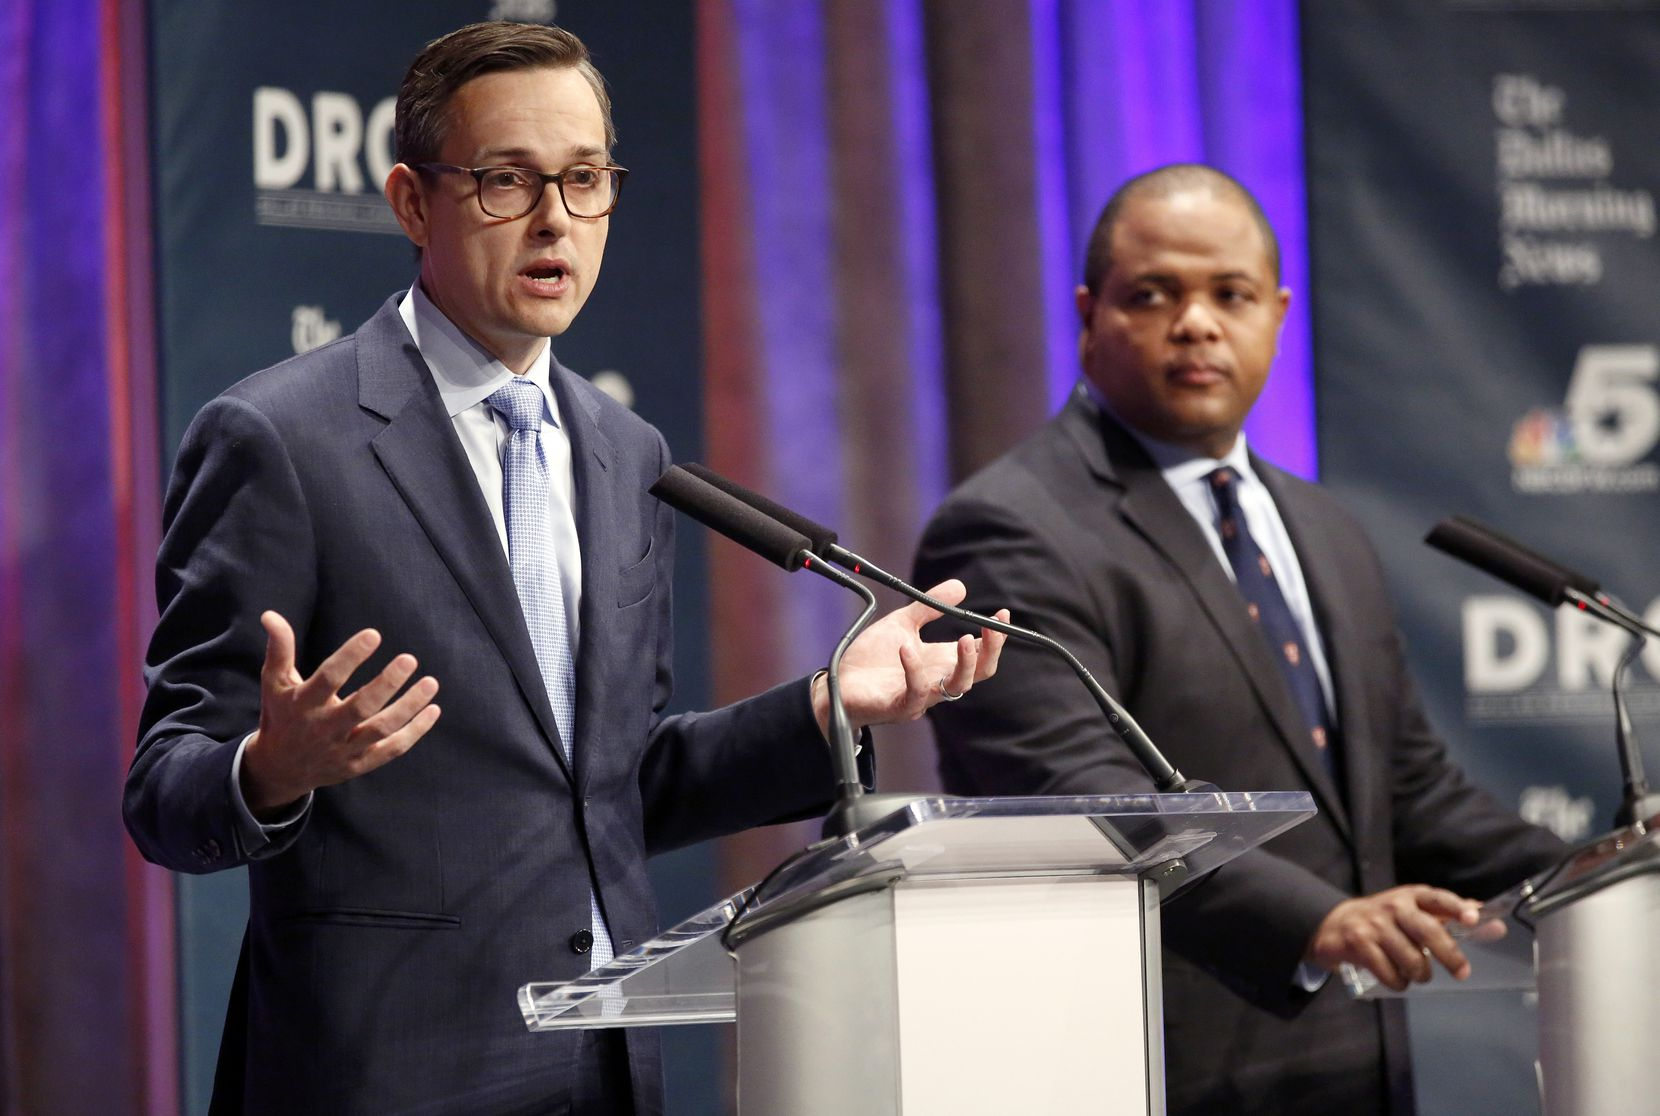 Dallas City Council member Scott Griggs (left) and State Rep. Eric Johnson, D-Dallas, participate in a televised one-hour debate sponsored by The Dallas Morning News, NBC5 and the Dallas Regional Chamber at El Centro College in downtown Dallas, Tuesday, May 14, 2019.